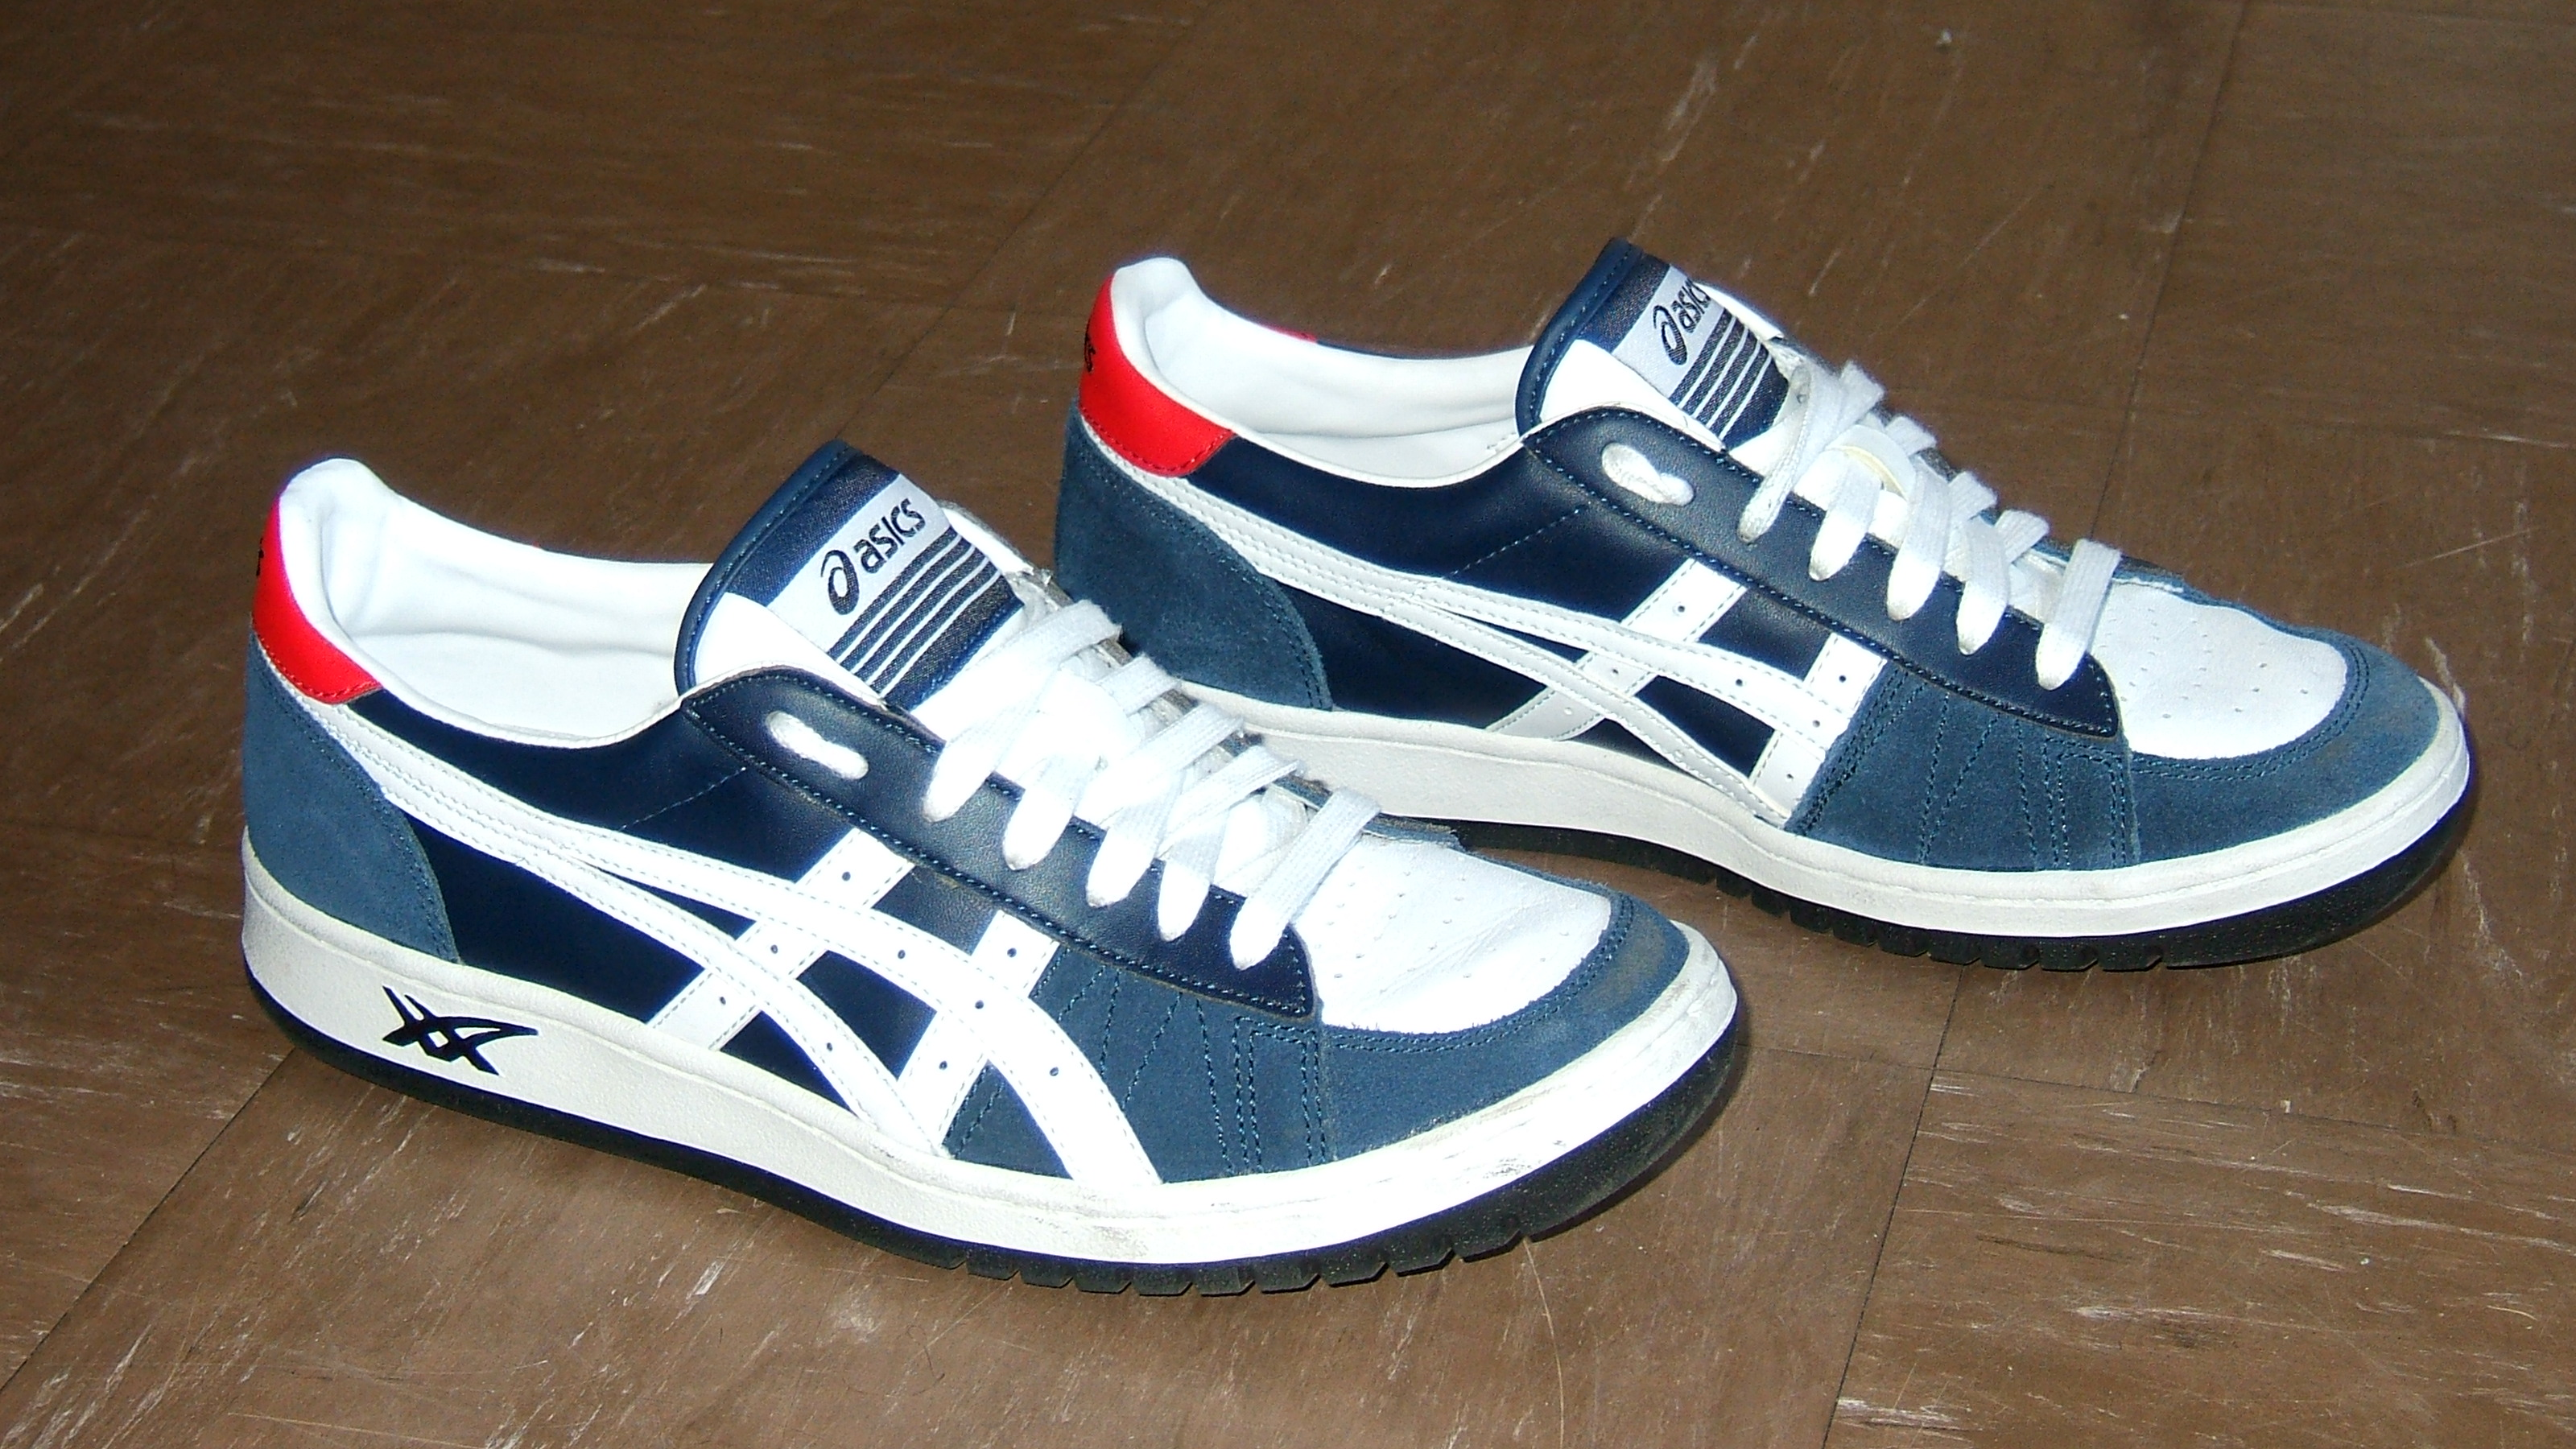 File:Asics shoes.JPG